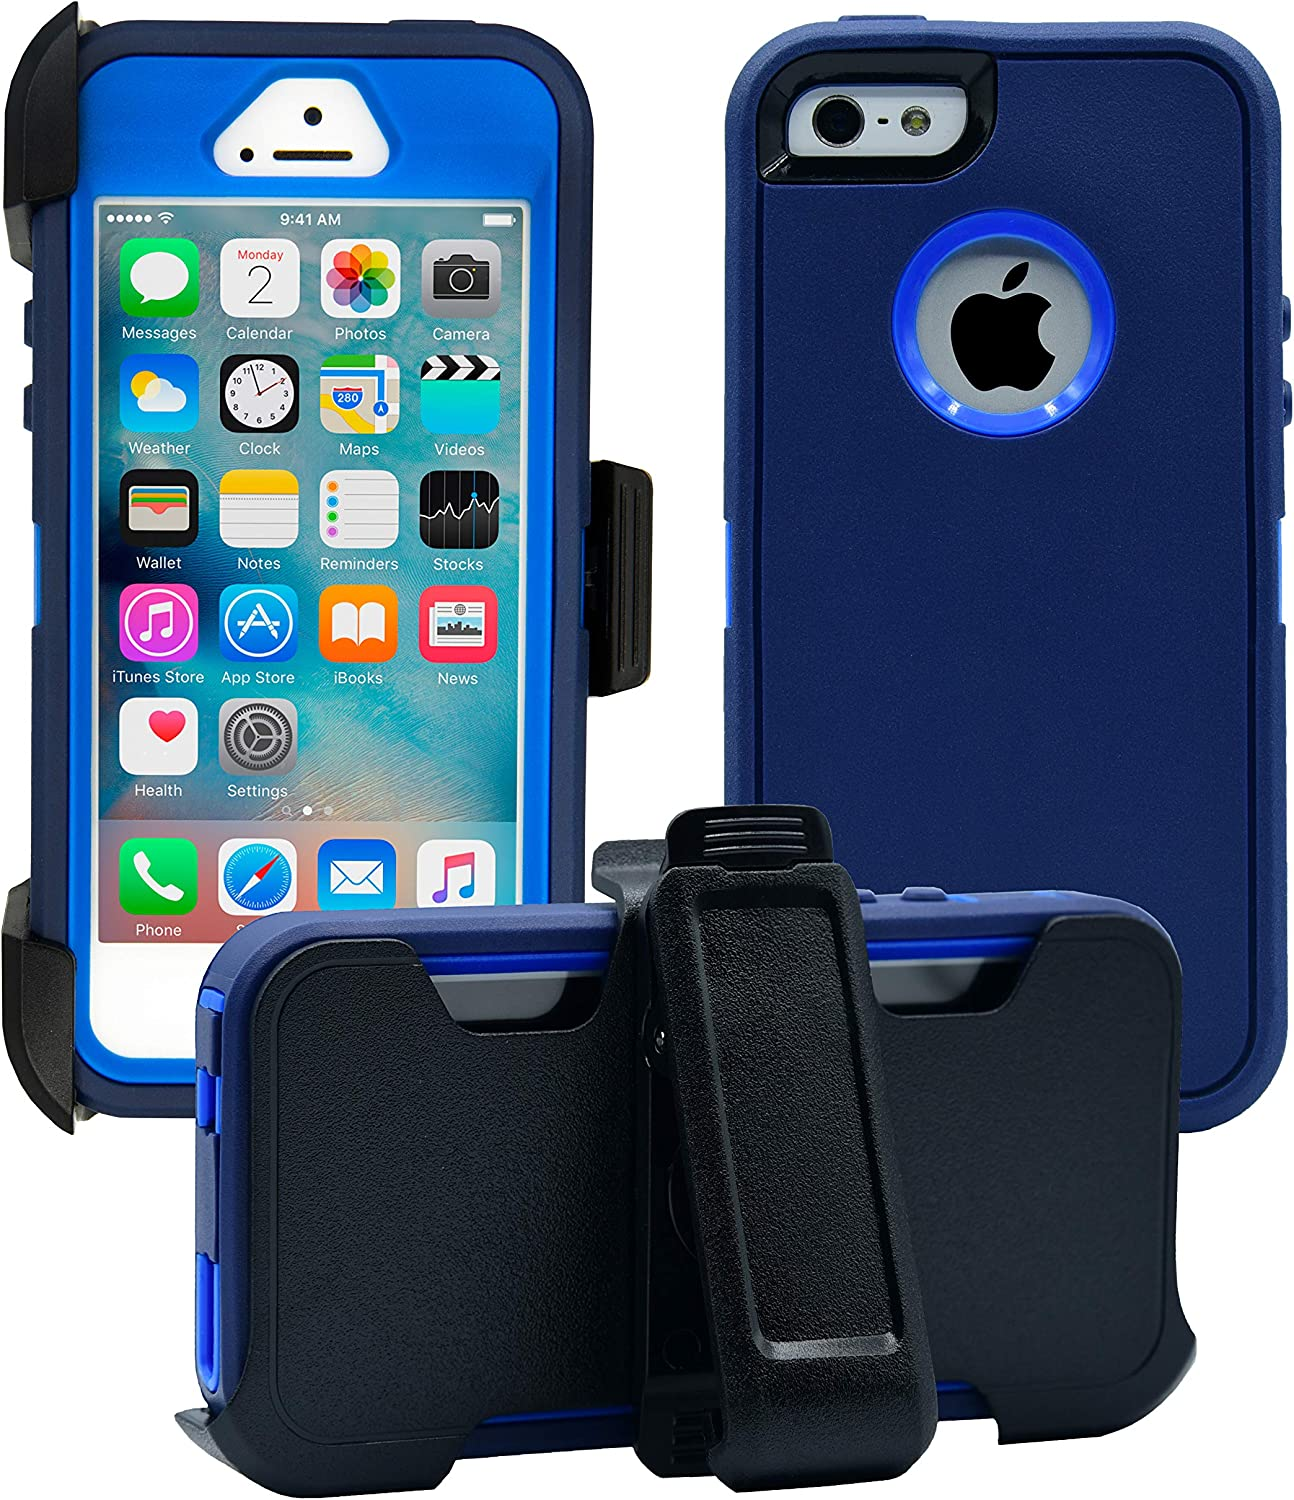 AlphaCell Cover Compatible with iPhone 5 / 5S / SE (2016)  2-in-1 Screen Protector & Holster Case   Full Body Military Grade Protection with Carrying Belt Clip   Protective Drop-Proof Shock-Proof